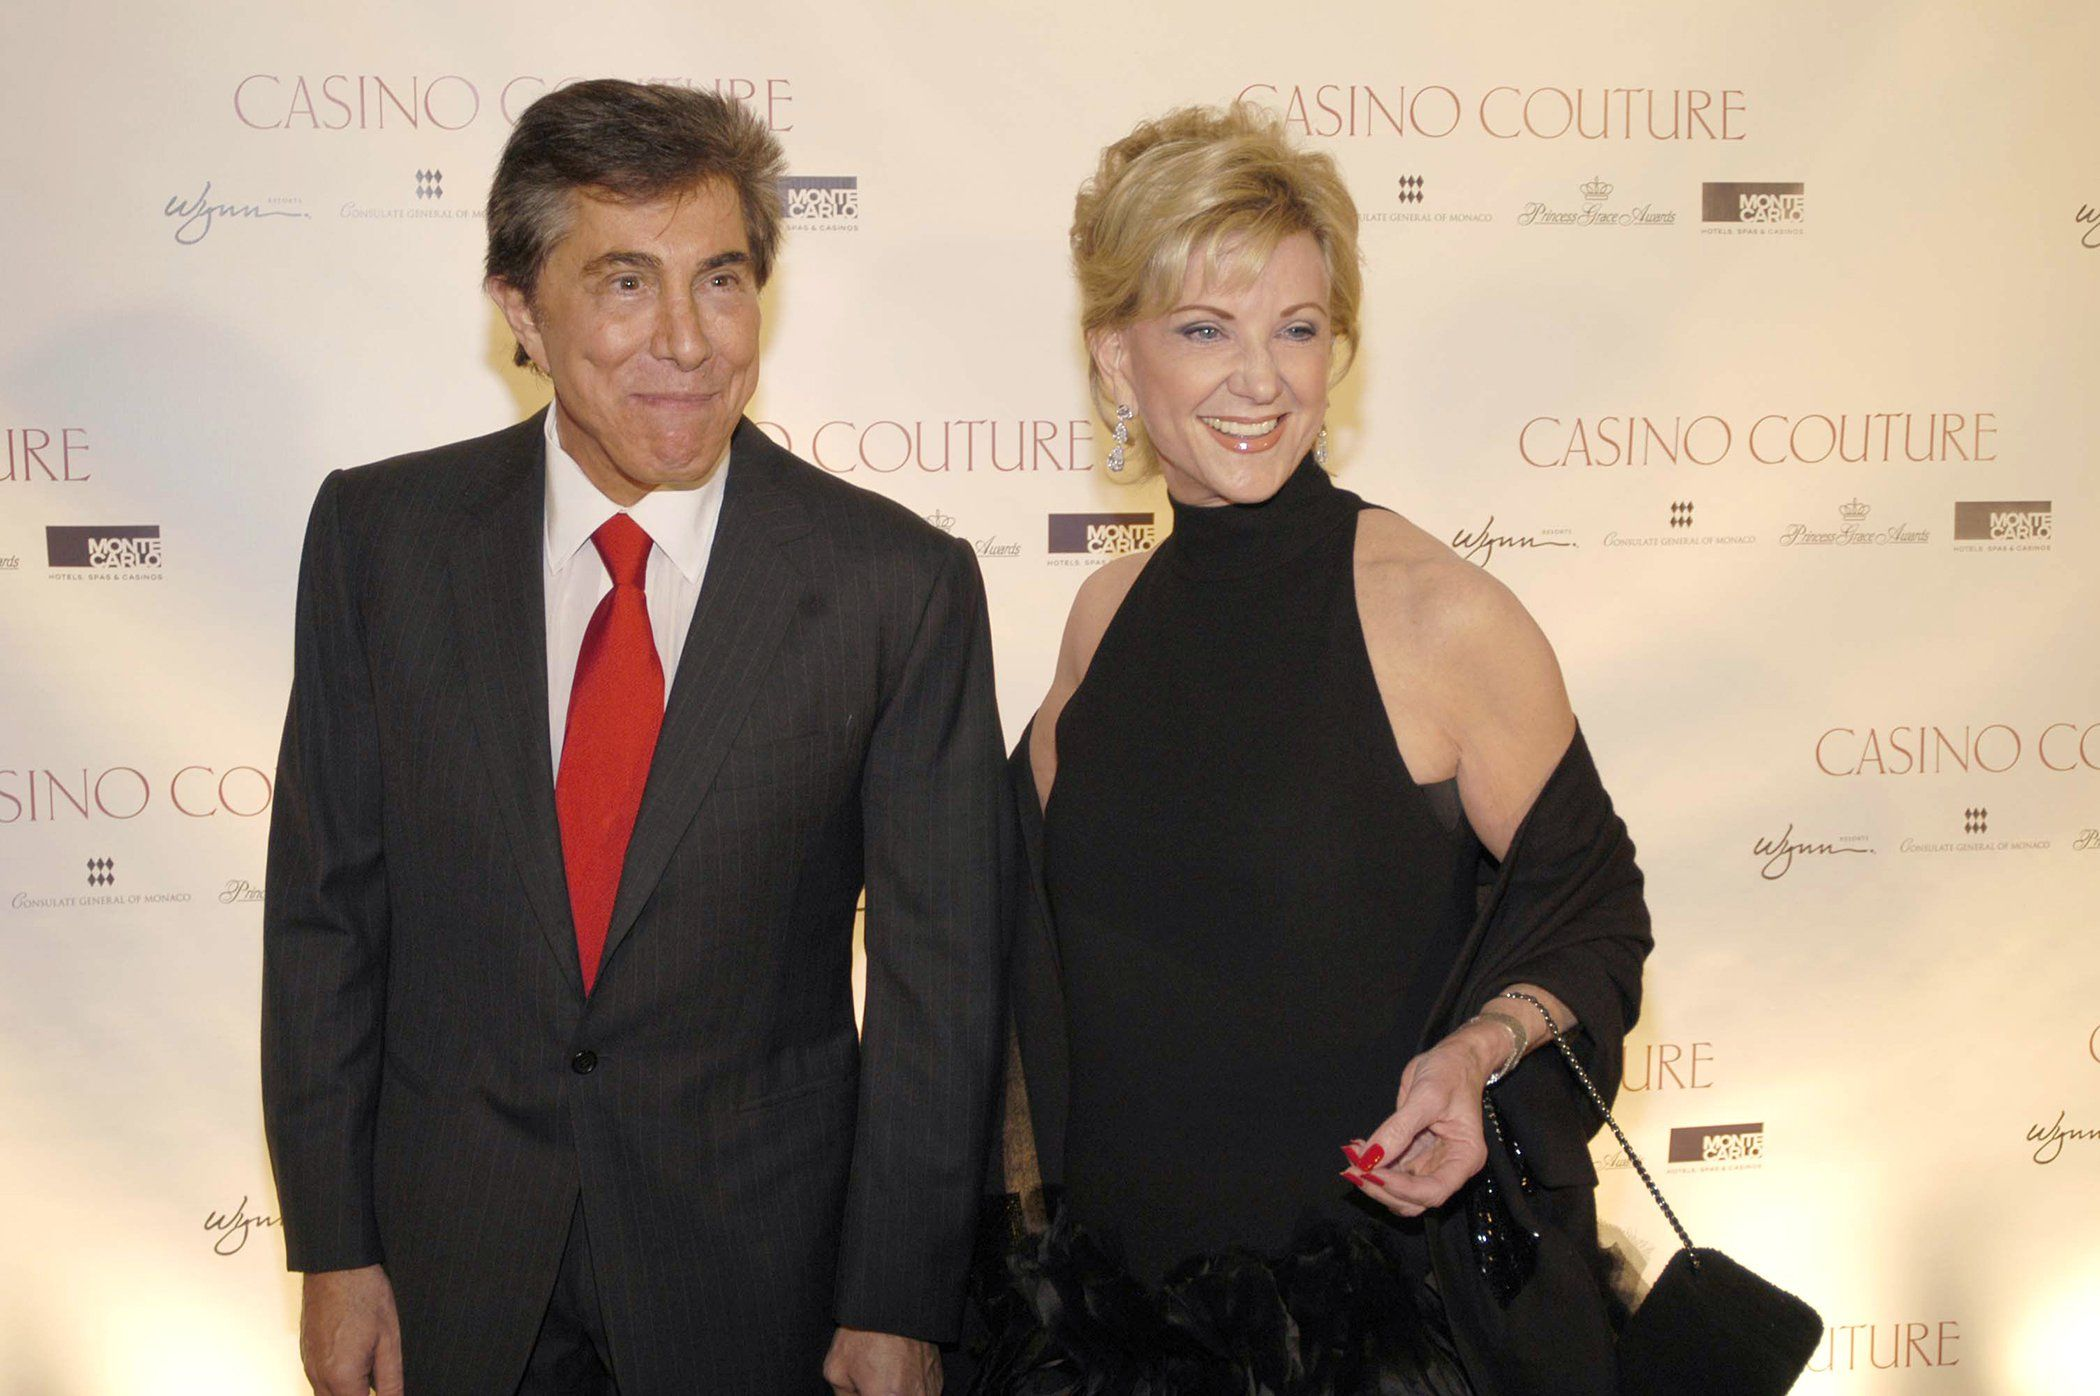 Steve and Elaine Wynn Cannot Sell Shares in Wynn Resorts, Says Judge